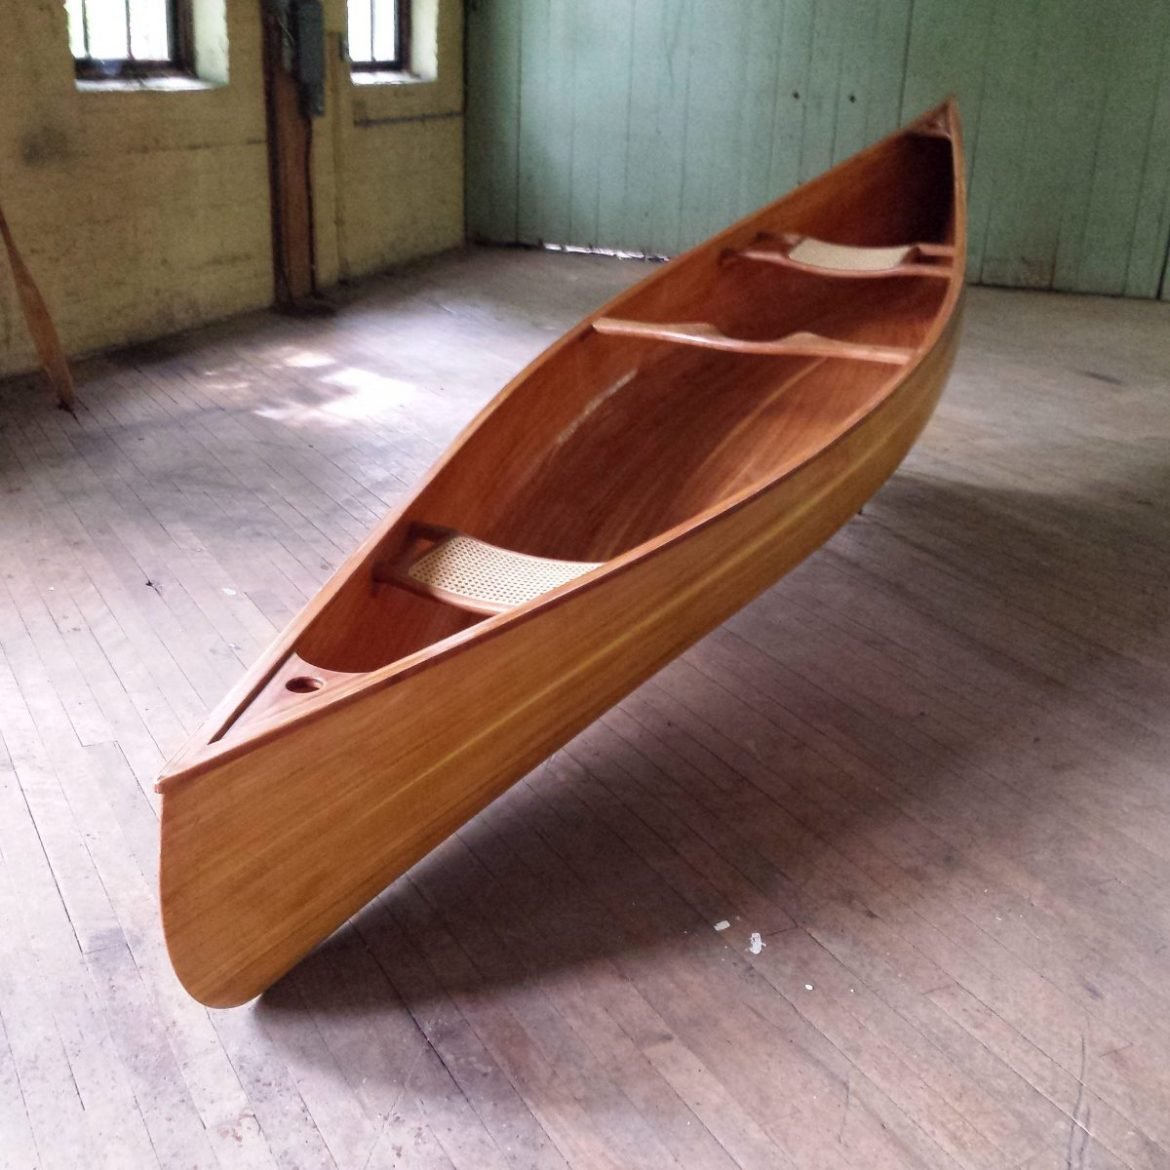 Cedar Strip Canoe from Ashes Still Water Boats